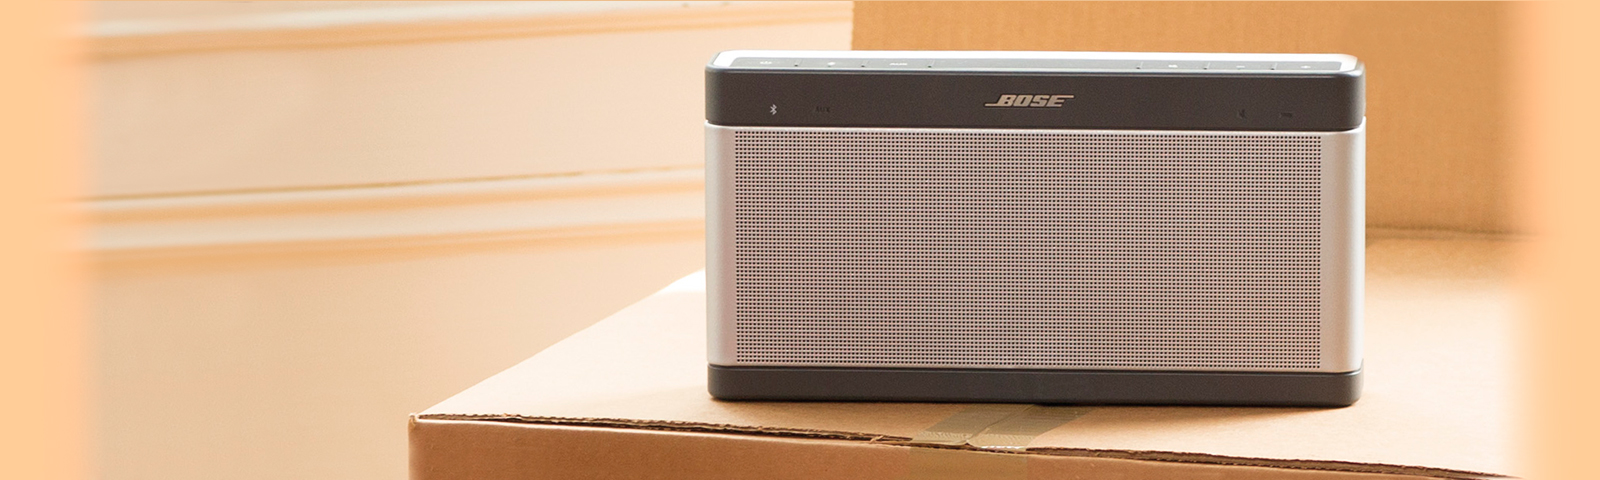 Bose_SoundLink_Bluetooth_III